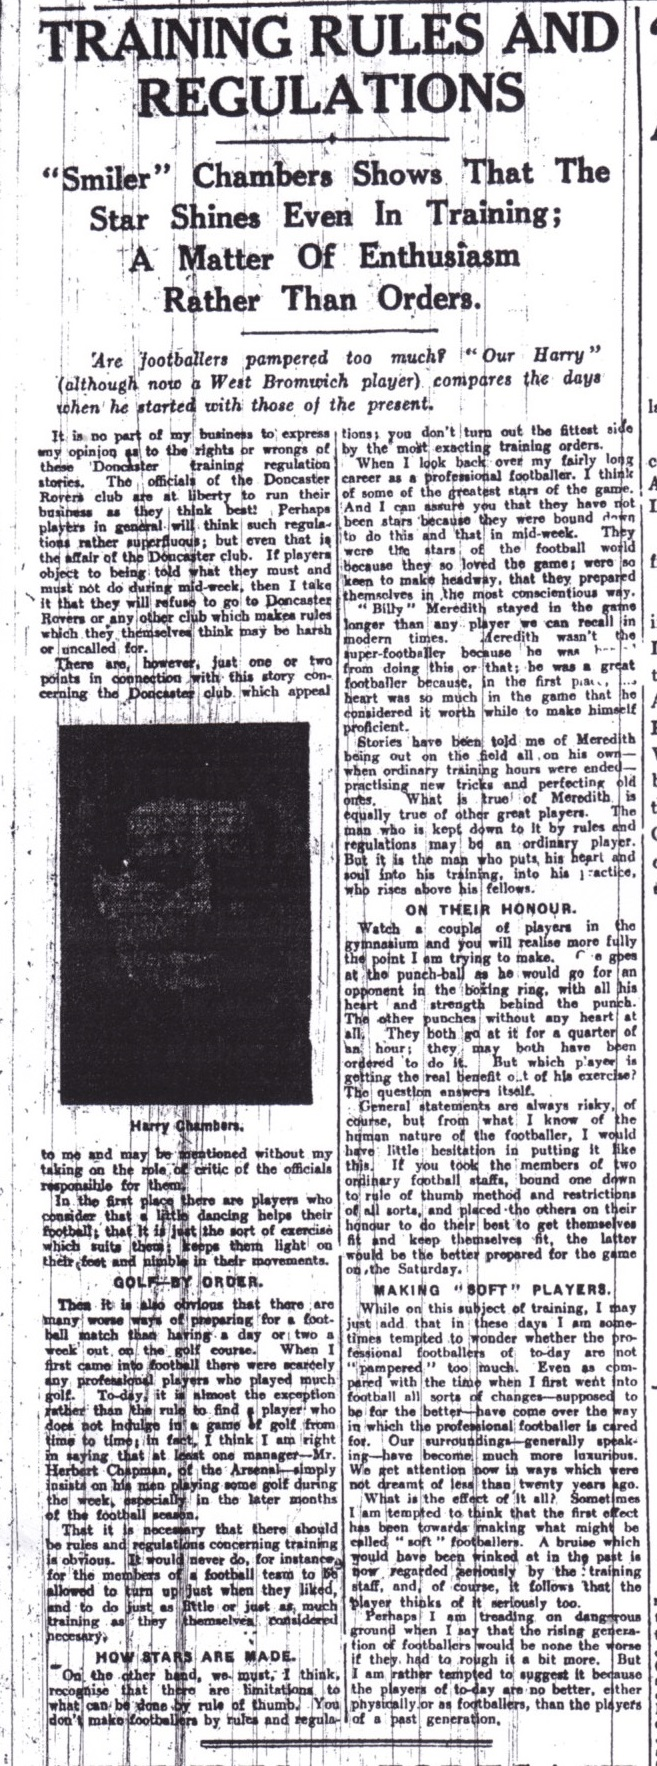 Harry Chambers' views on training in the Echo in October 1928